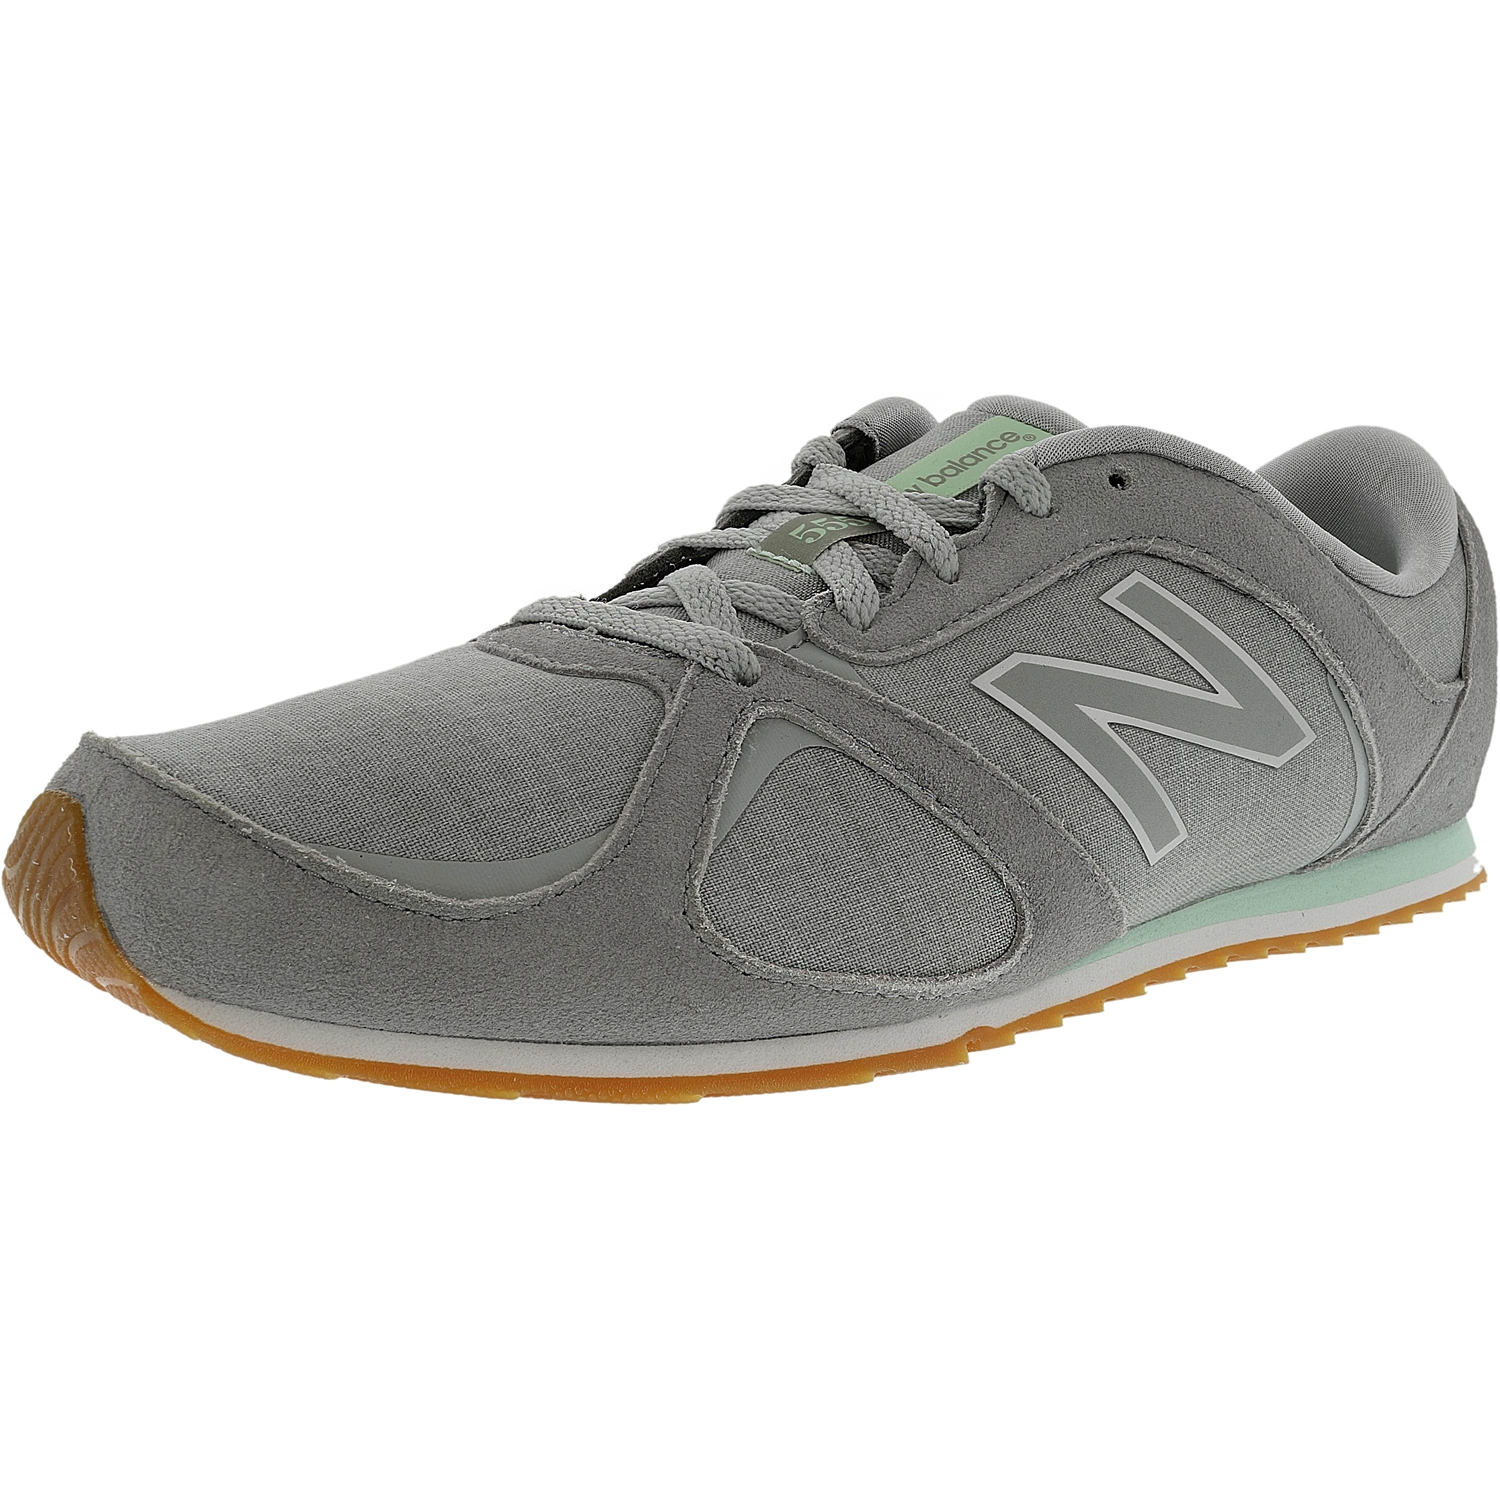 New Balance Women's Wl555 Sg Ankle-High Fabric Cross Trai...